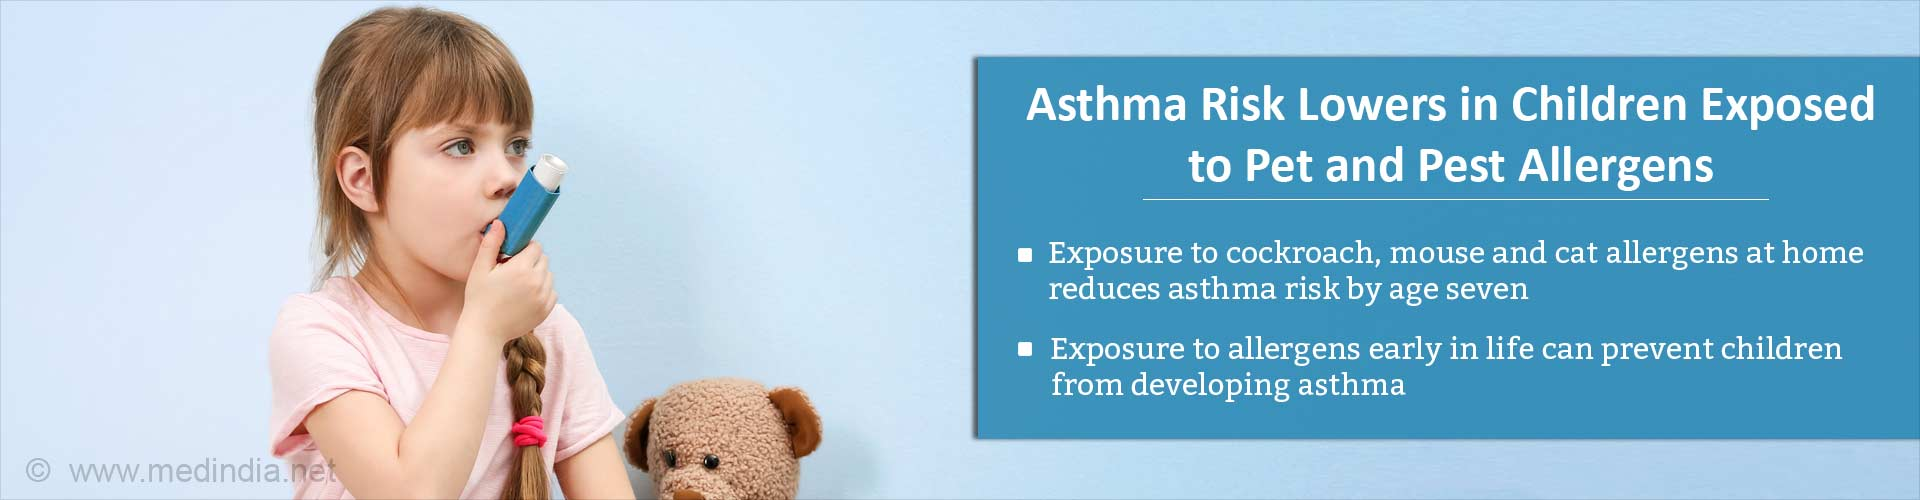 Early Exposure to Pet and Pest Allergens Lower Asthma Risk